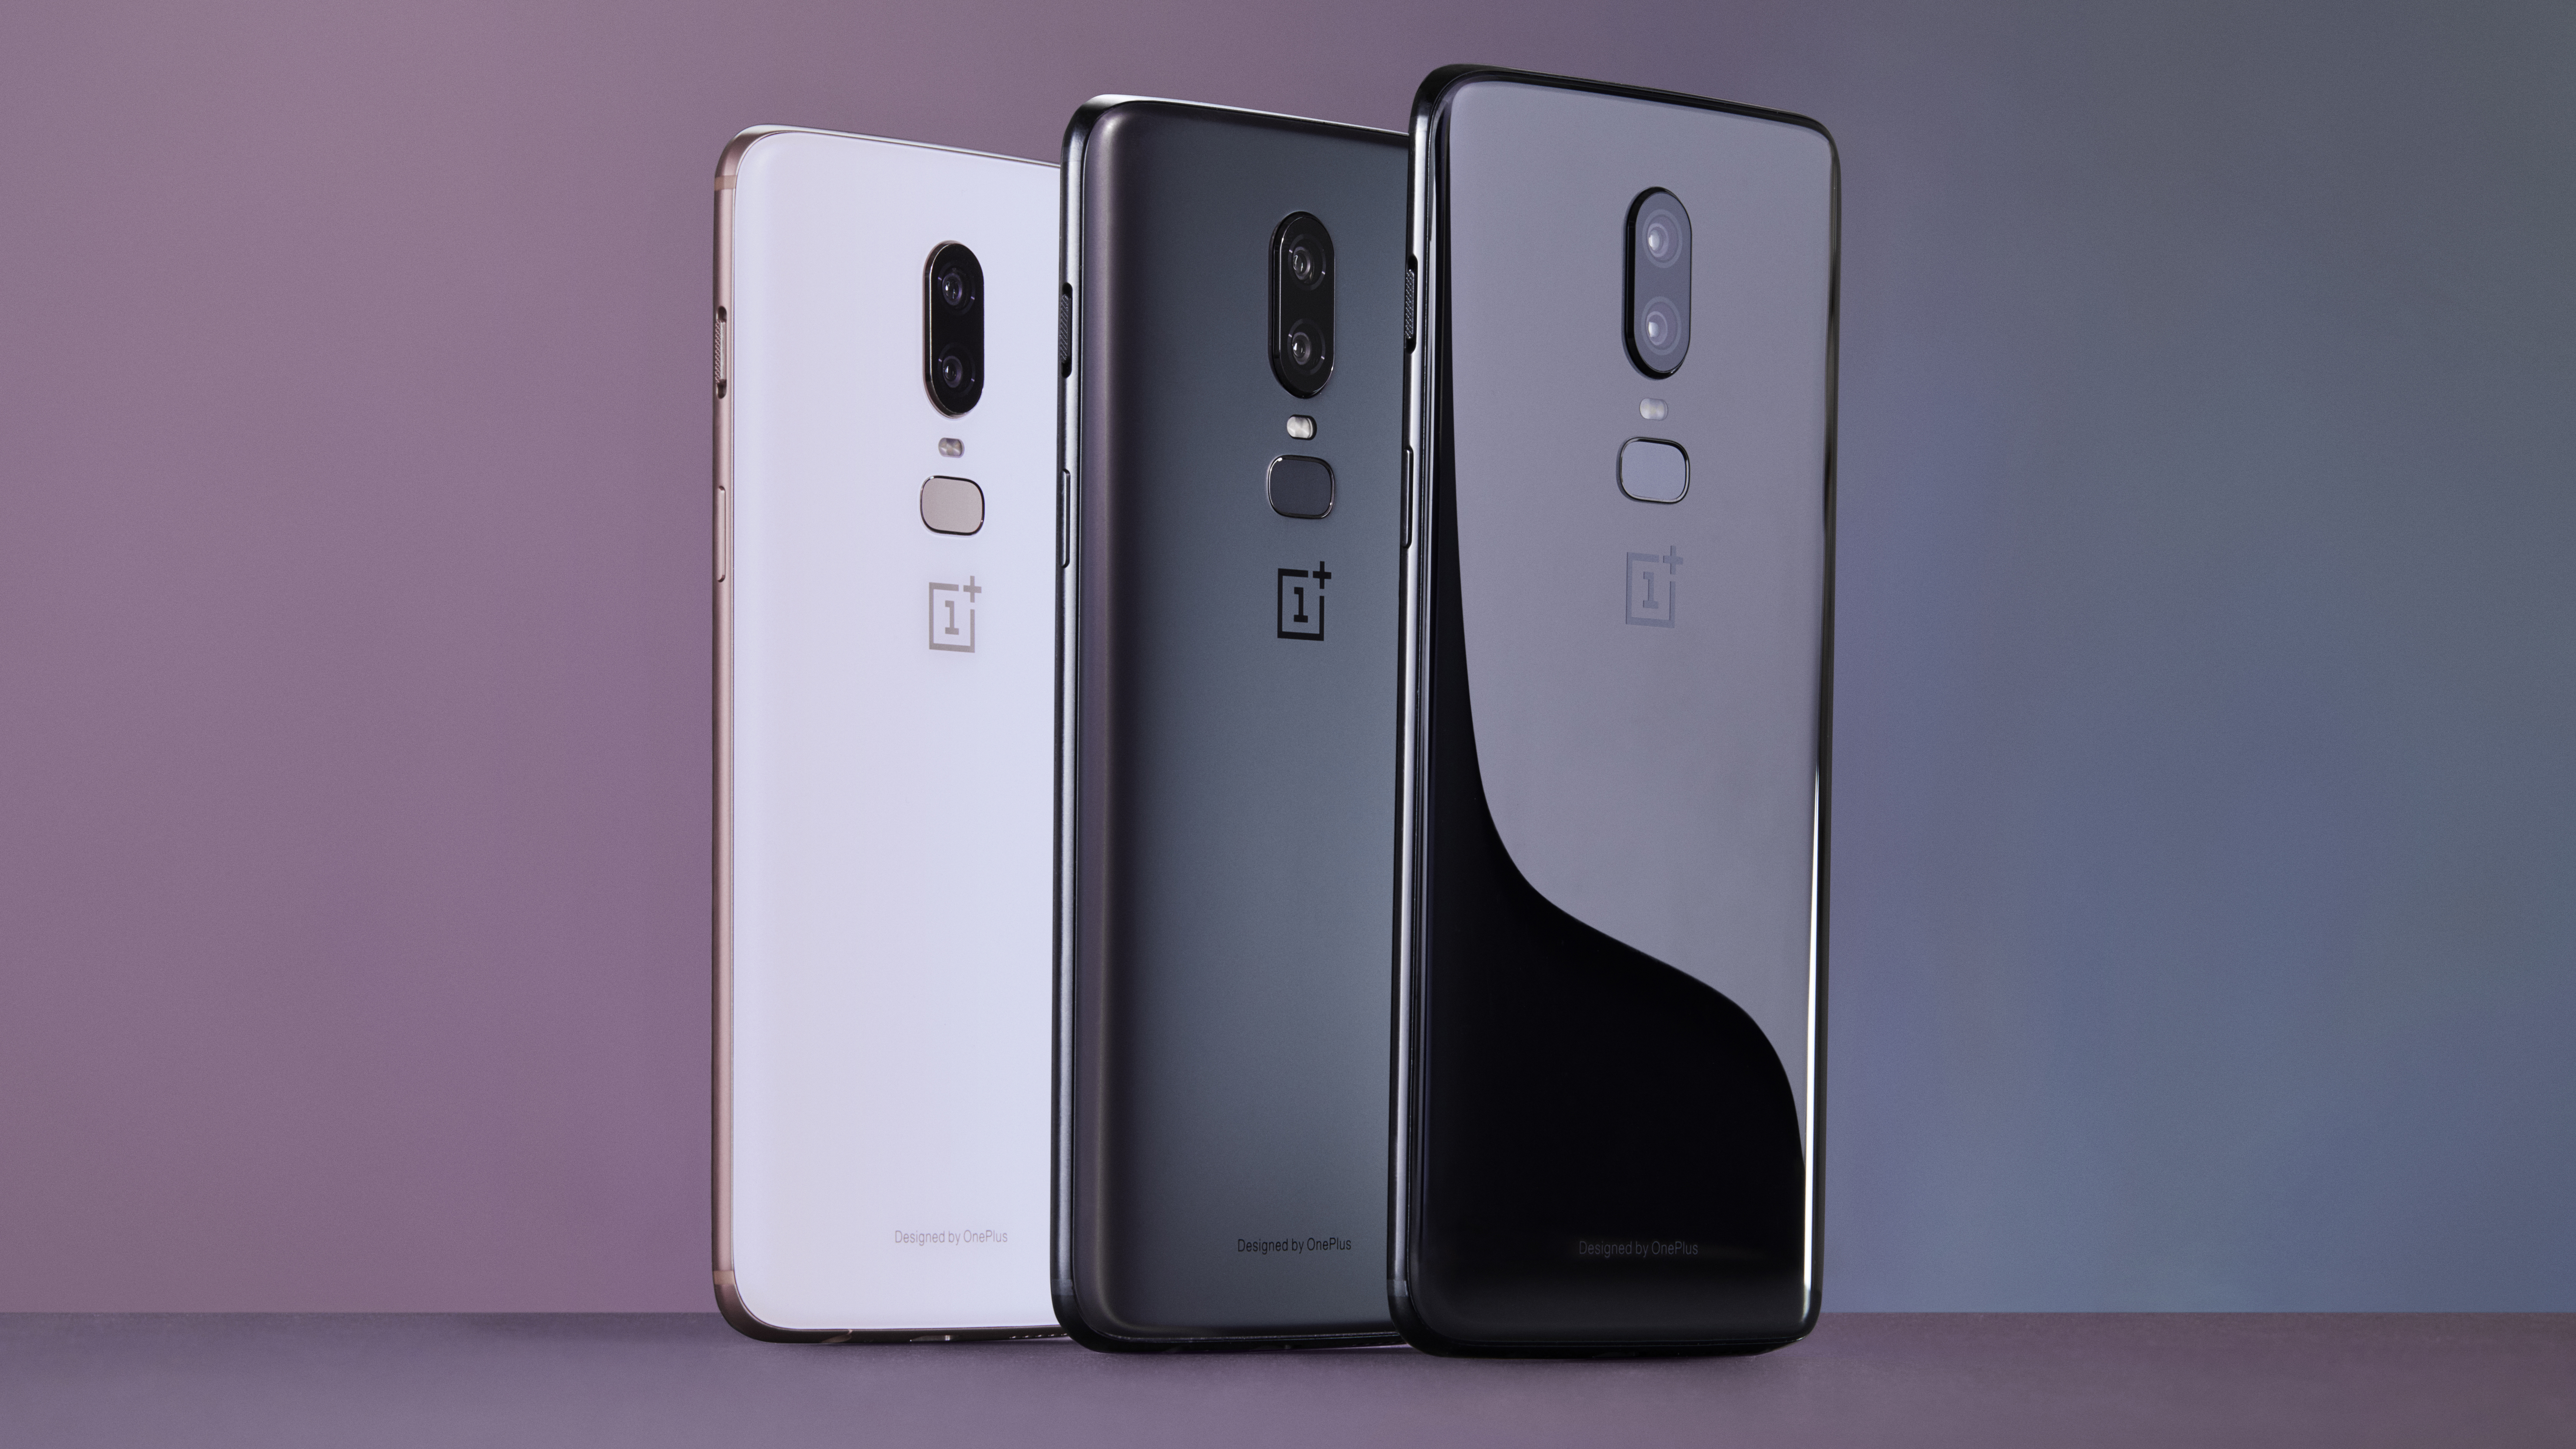 low priced 99e48 84ba7 OnePlus 6 review: Is it worth saving money over an iPhone or Samsung ...